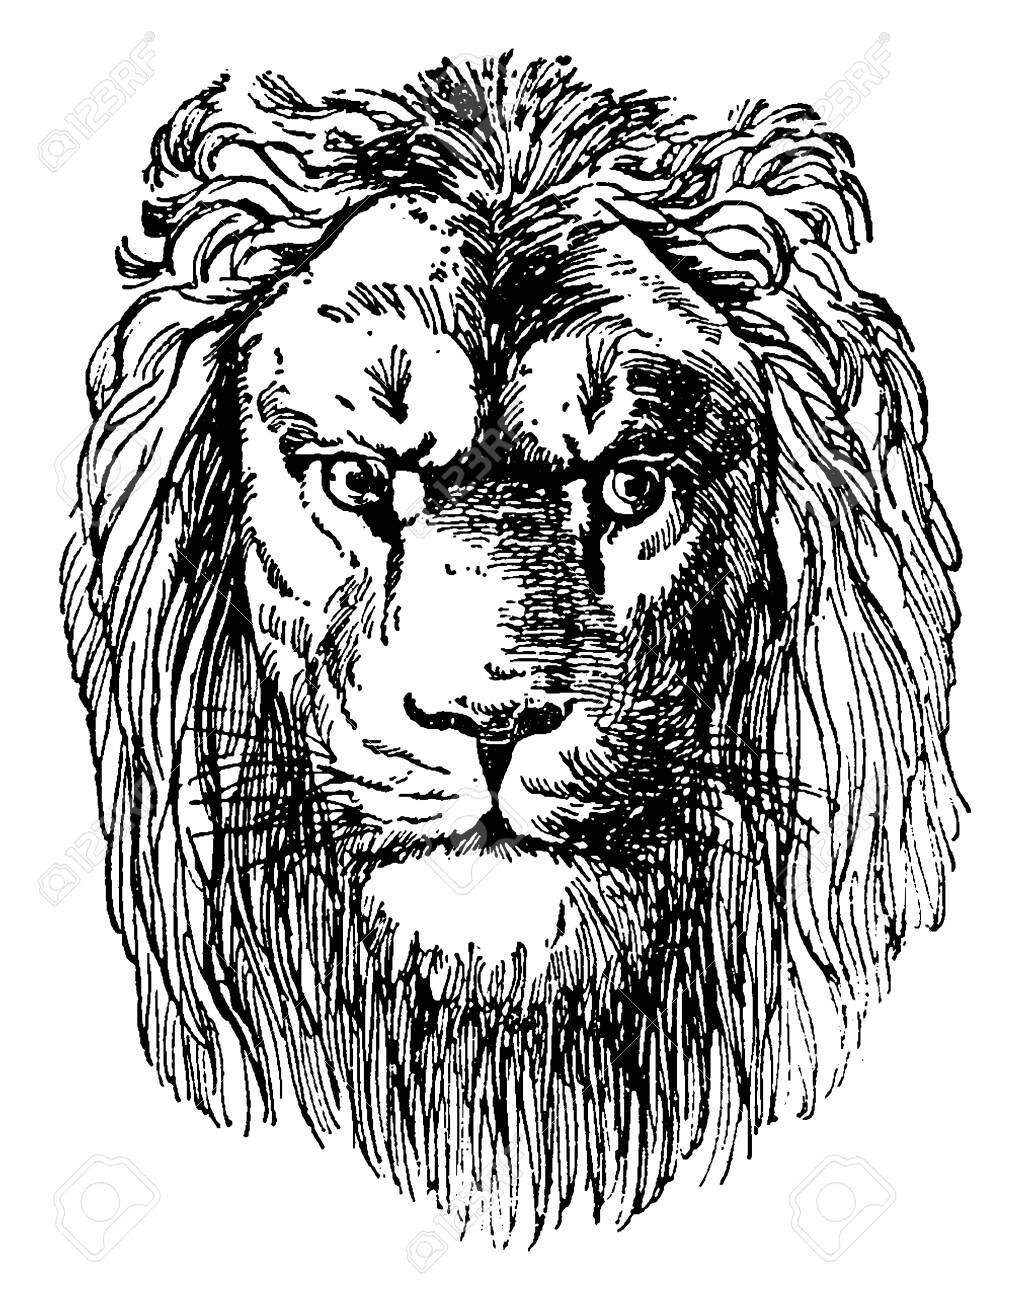 Lion Head Is A Prospectus Of Dr Schubert S Naturgeschichte Royalty Free Cliparts Vectors And Stock Illustration Image 132978361 All the best lion face outline drawing 39+ collected on this page. https www 123rf com photo 132978361 stock vector lion head is a prospectus of dr schubert s naturgeschichte vintage line drawing or engraving illustr html